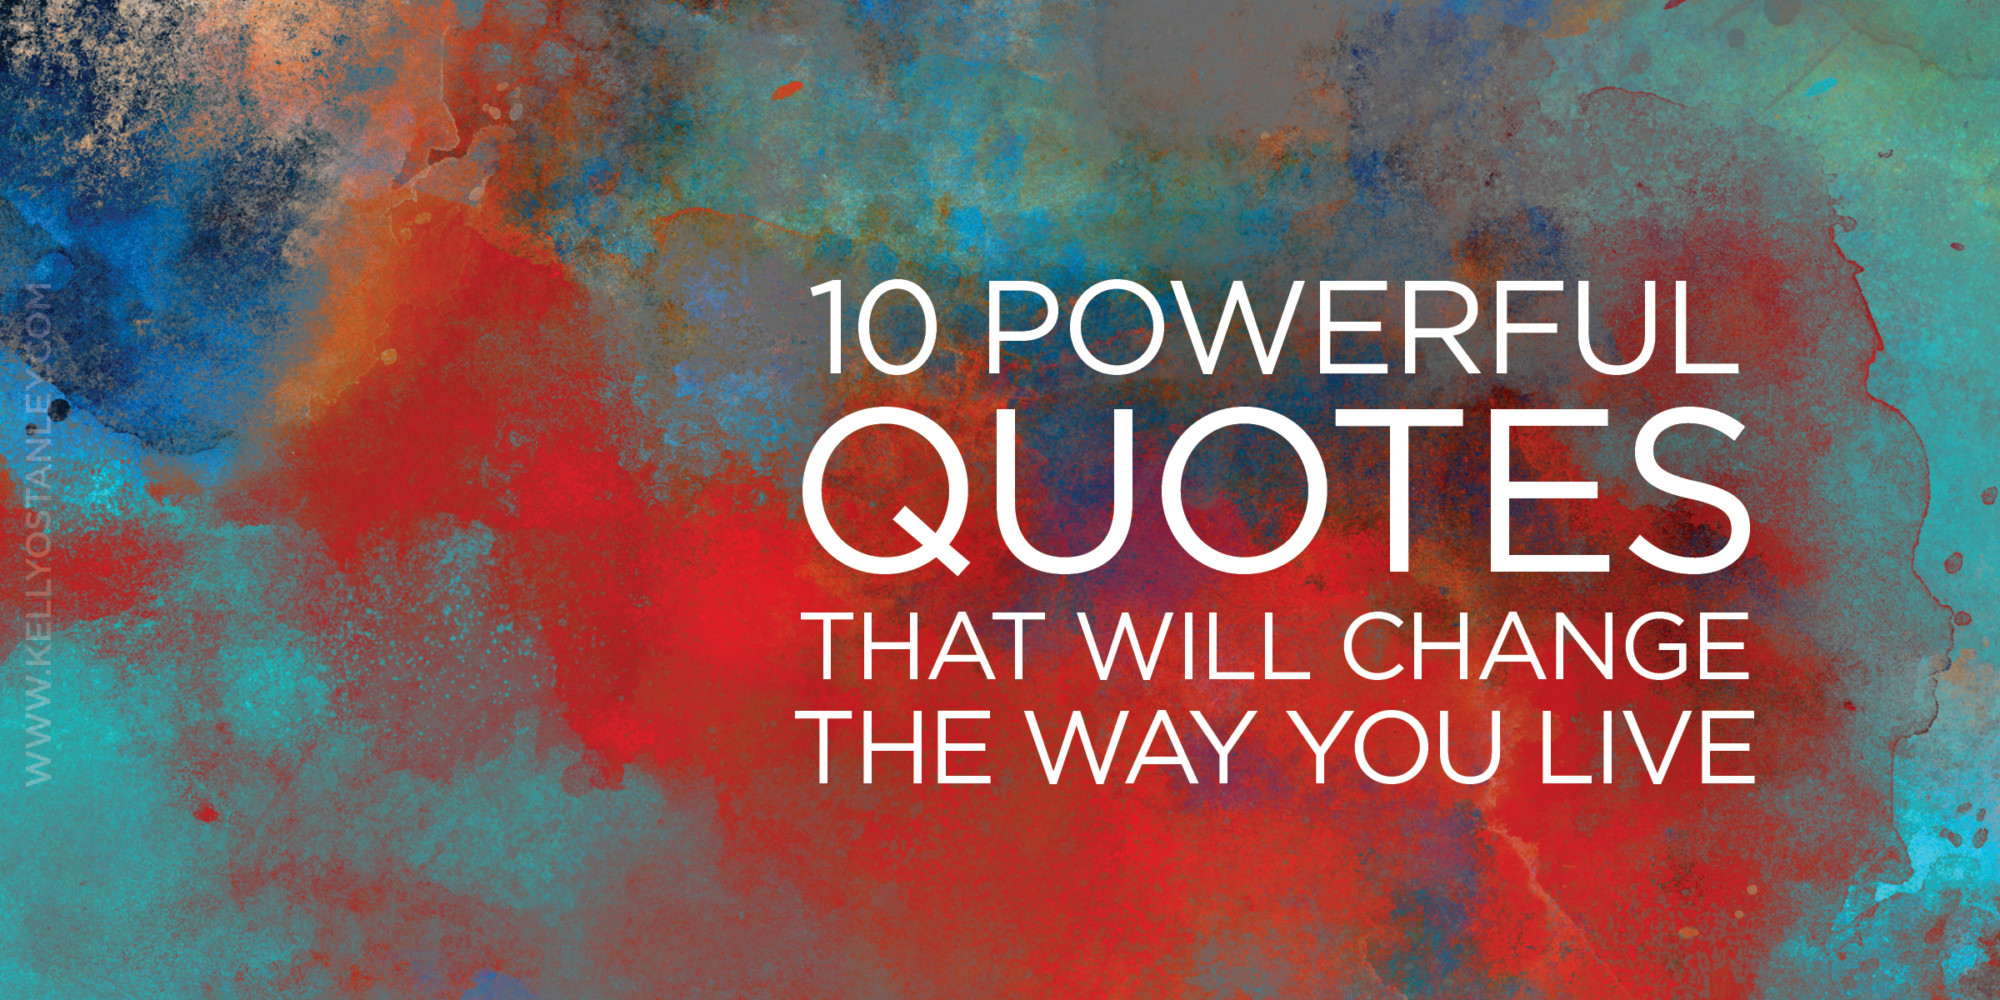 10 Powerful Quotes That Will Change The Way You Live Kelly Odell